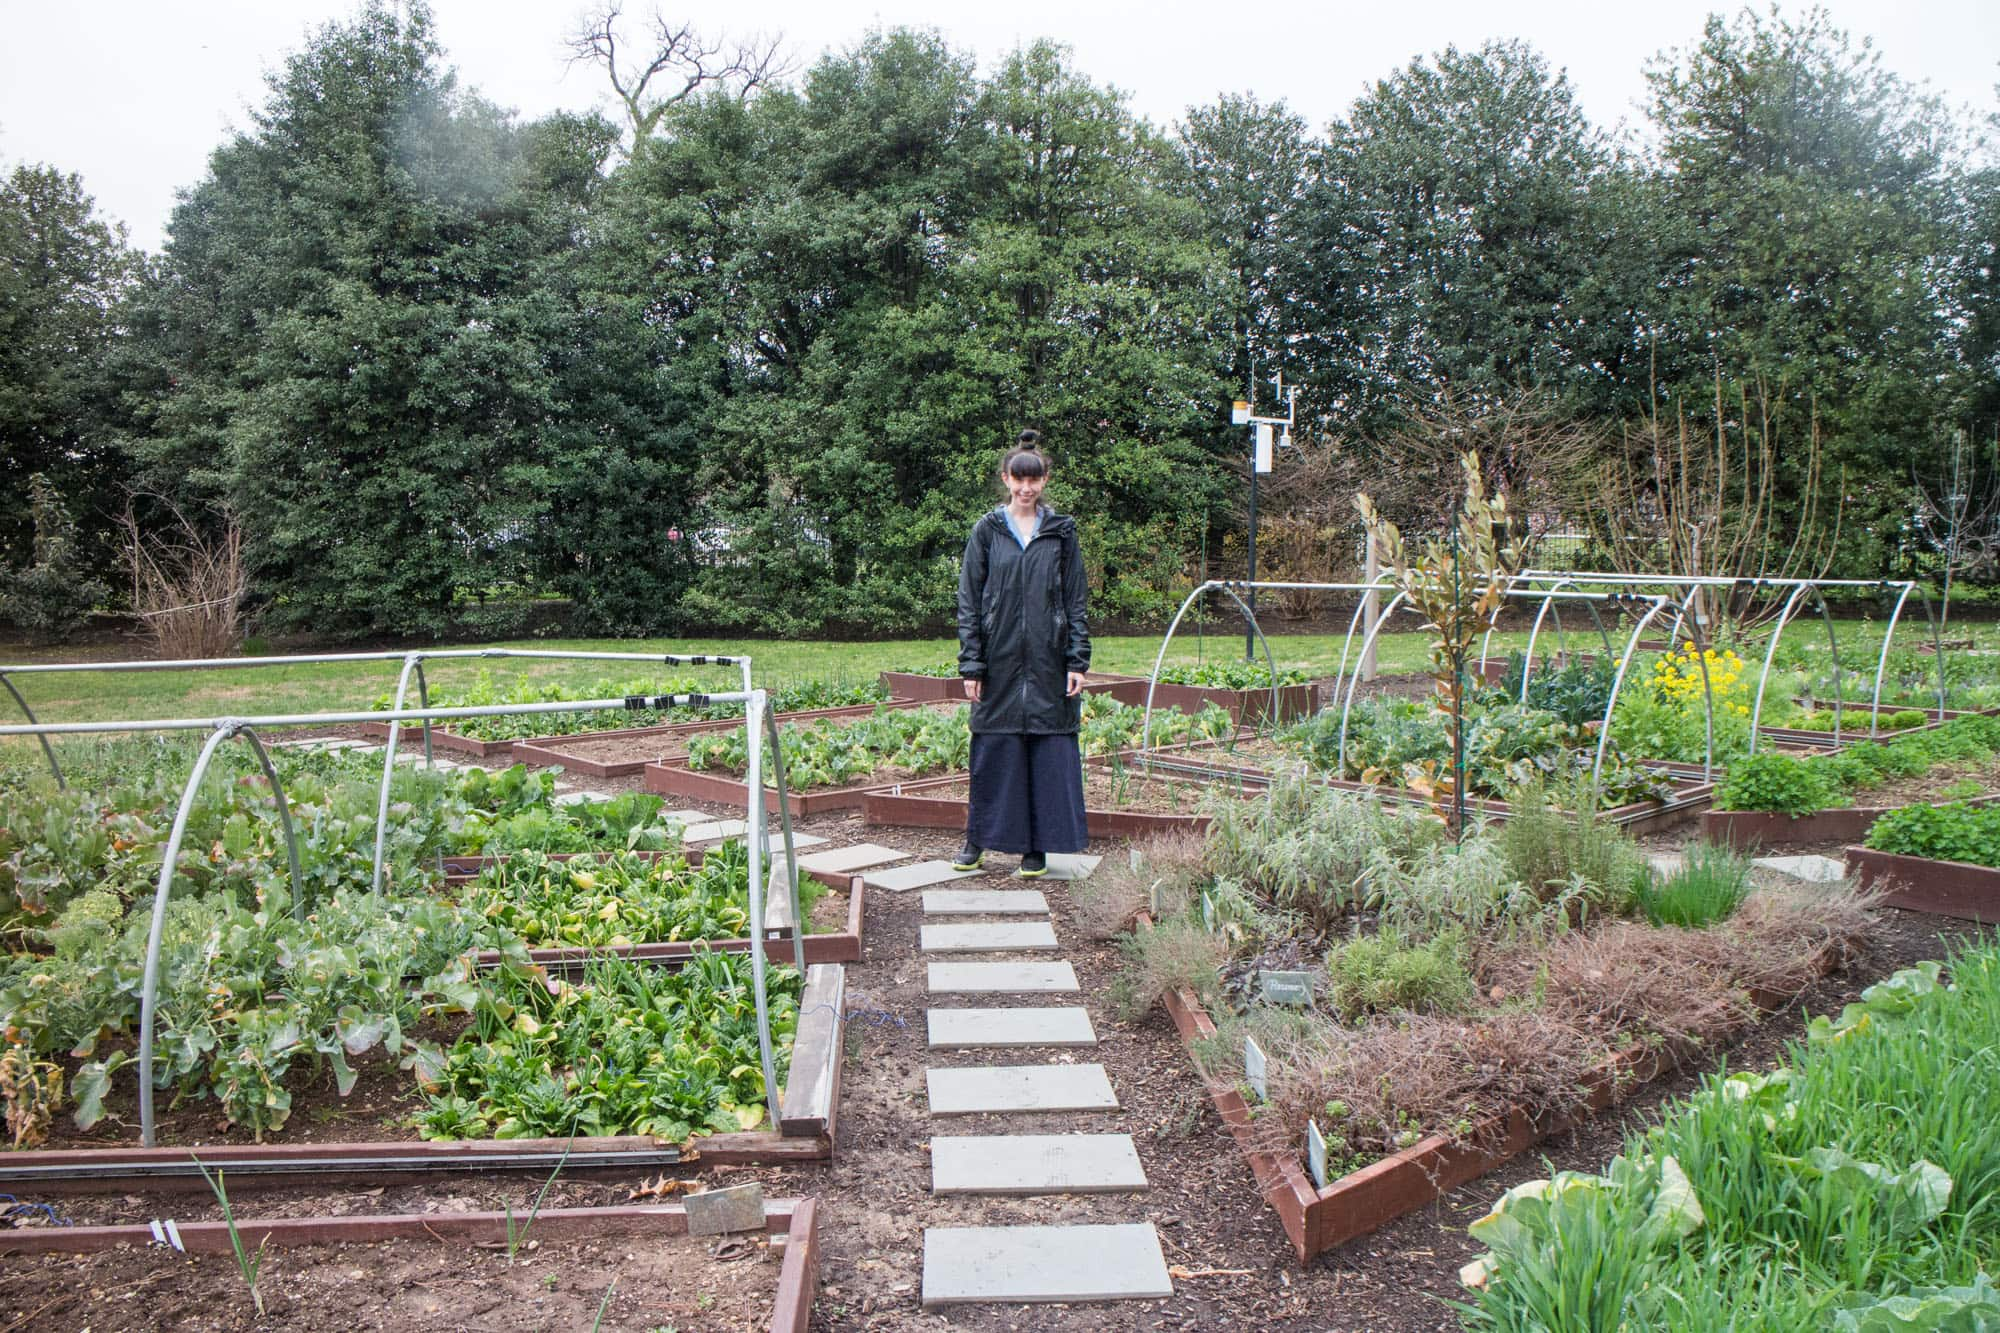 A Visit to the White House Garden - Full Tour of Veggies, Bees and ...